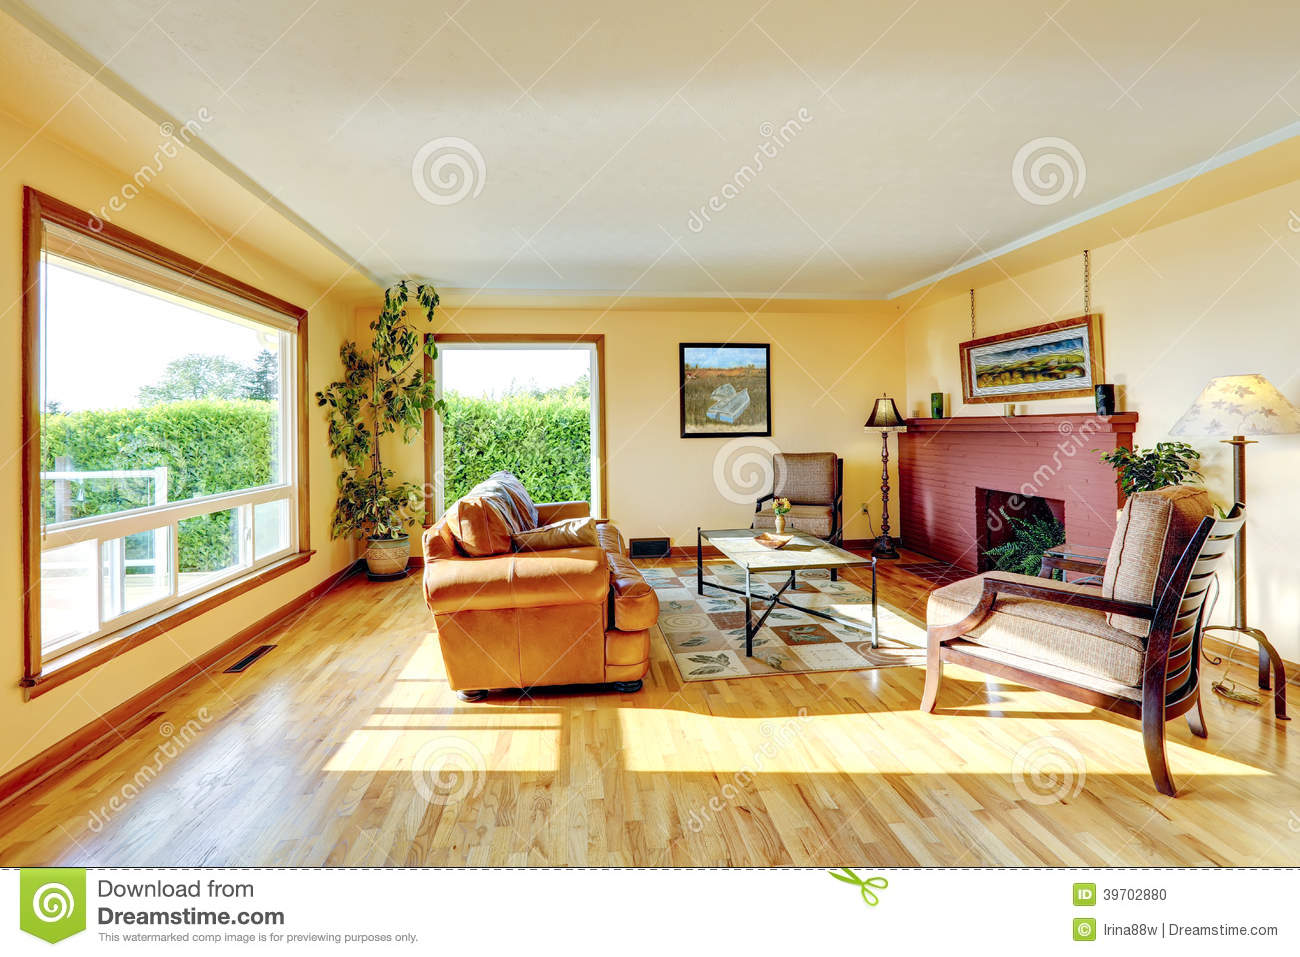 living room with red brick fireplace stock photo - image: 39702880